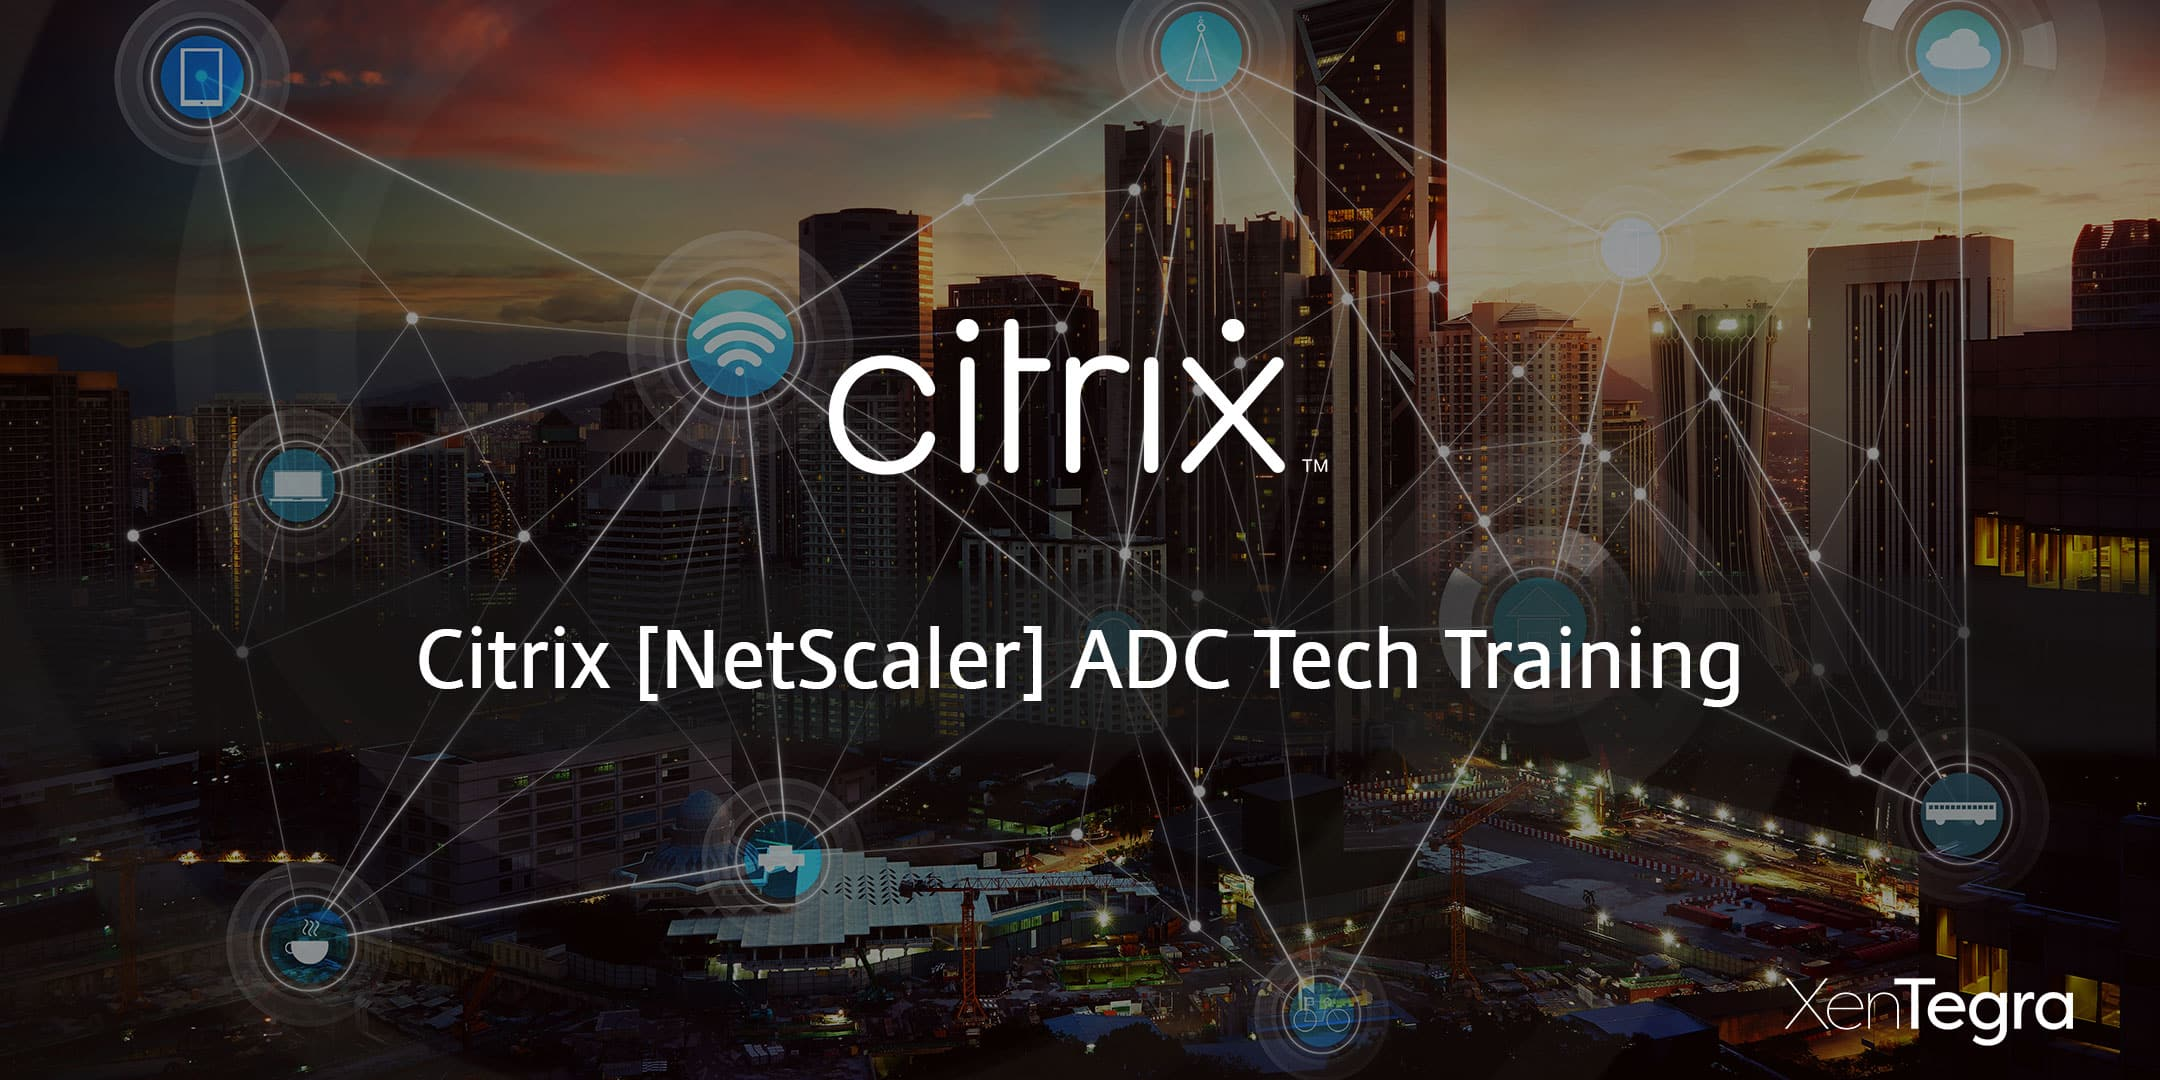 Online: Citrix [NetScaler] ADC Tech Training